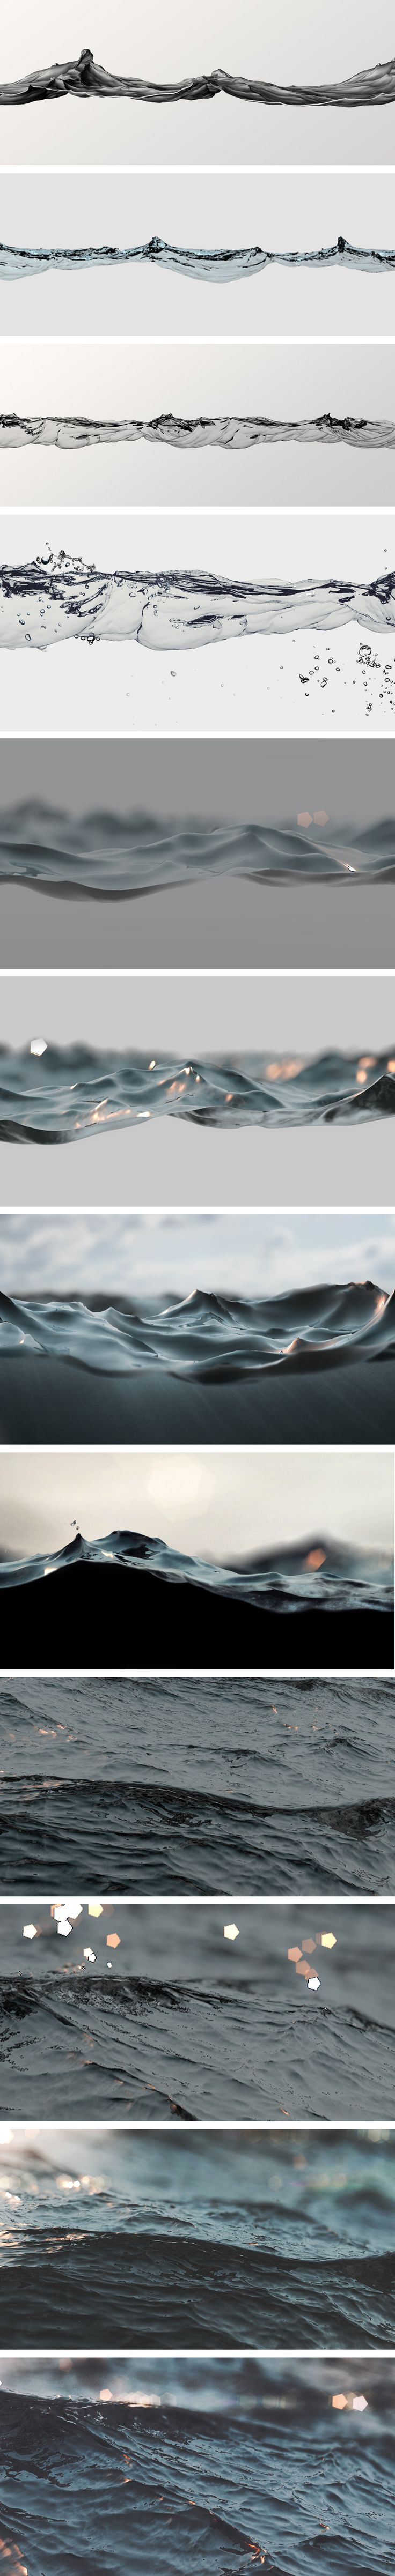 water study by Julian Hrankov